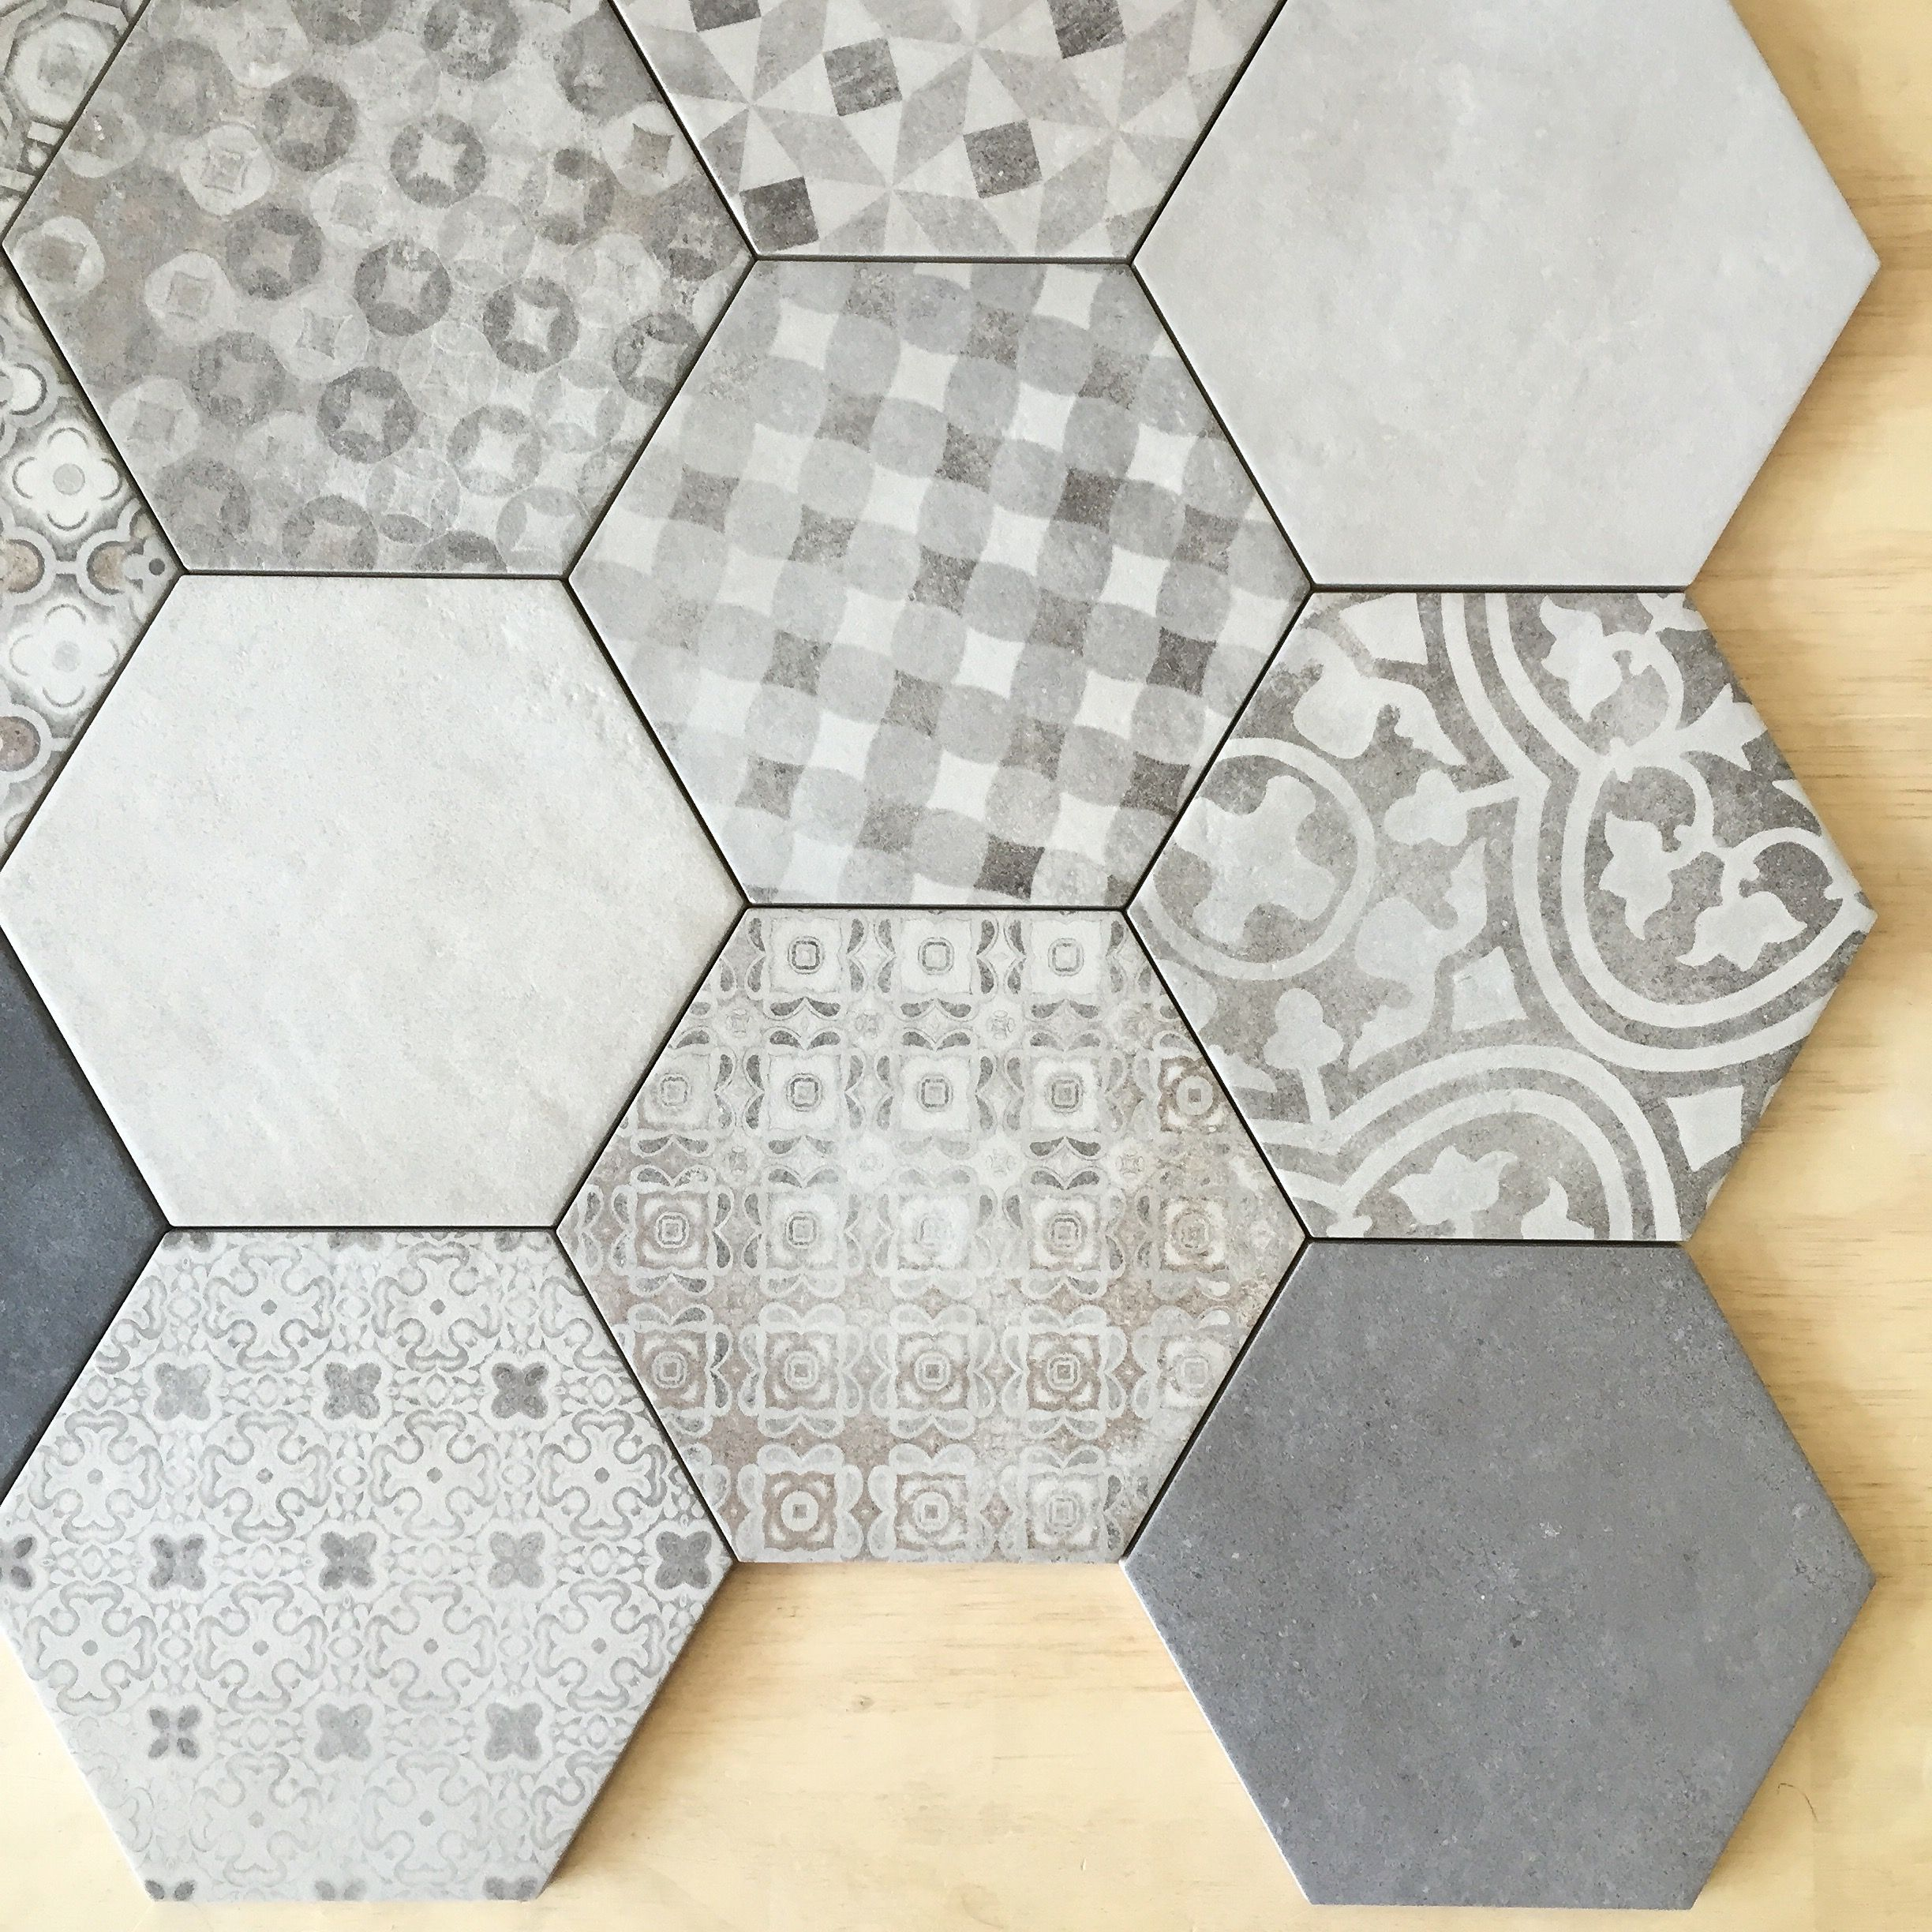 New hexagon colour block pattern blend tiles hexagon tile new hexagon colour block pattern blend tiles hexagon tile dailygadgetfo Choice Image